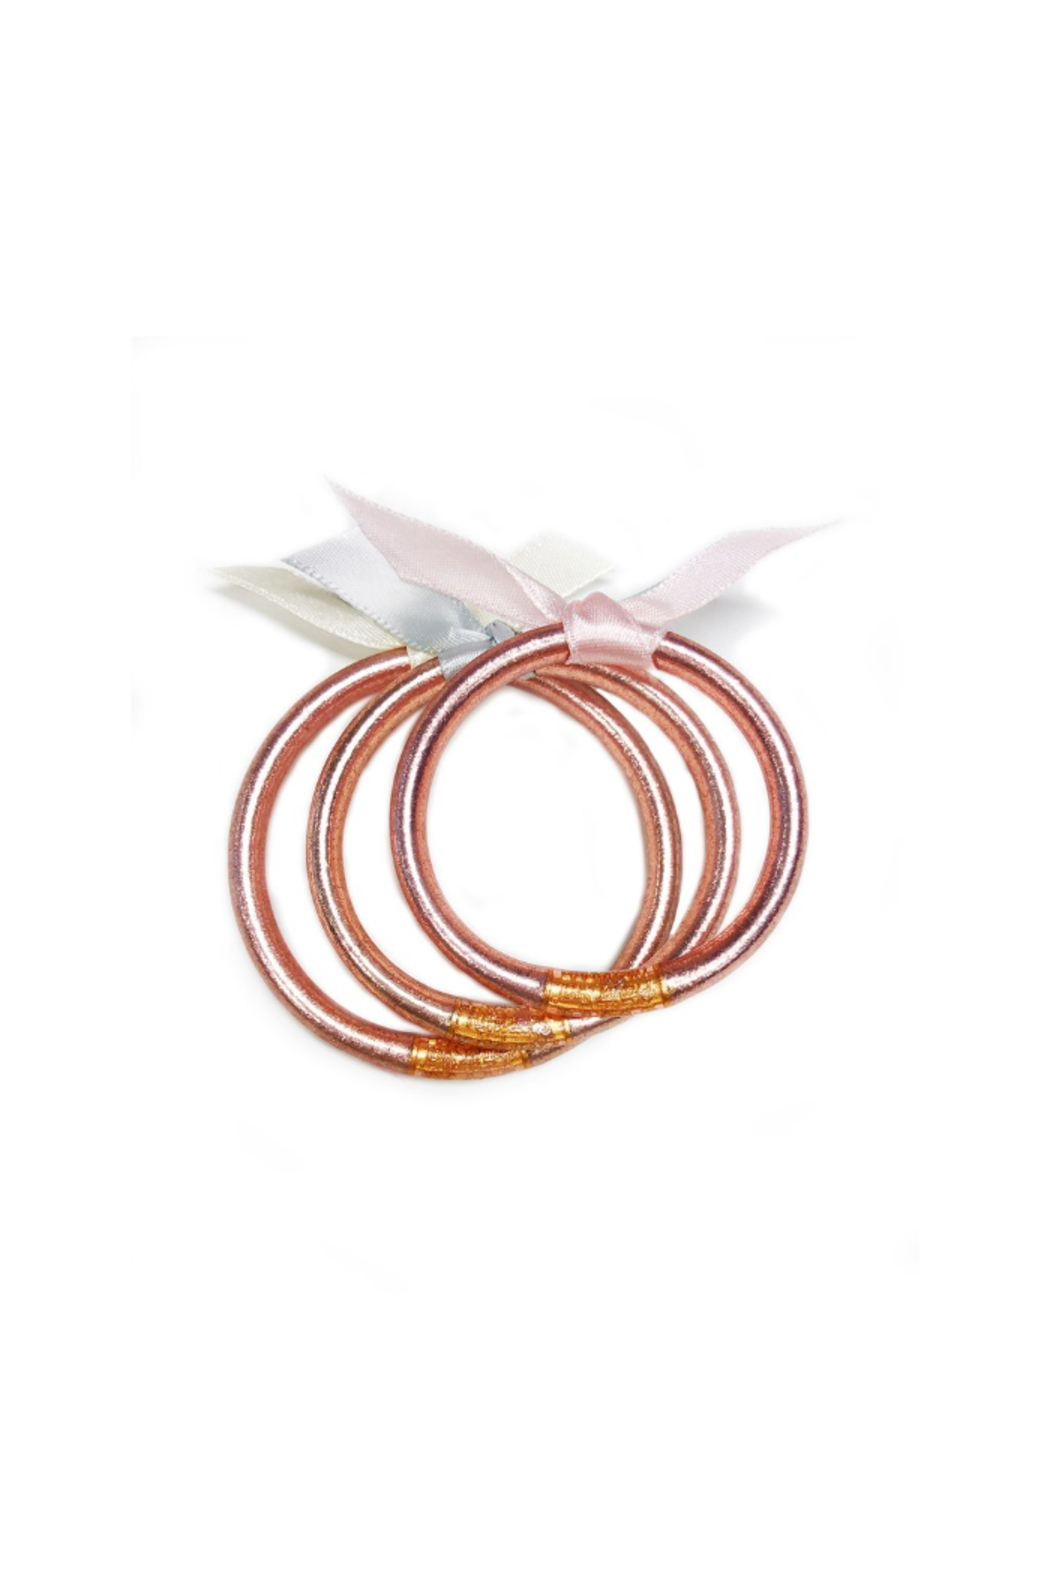 The Birds Nest ROSE GOLD ALL WEATHER BANGLES FOR BABIES-SMALL - Main Image